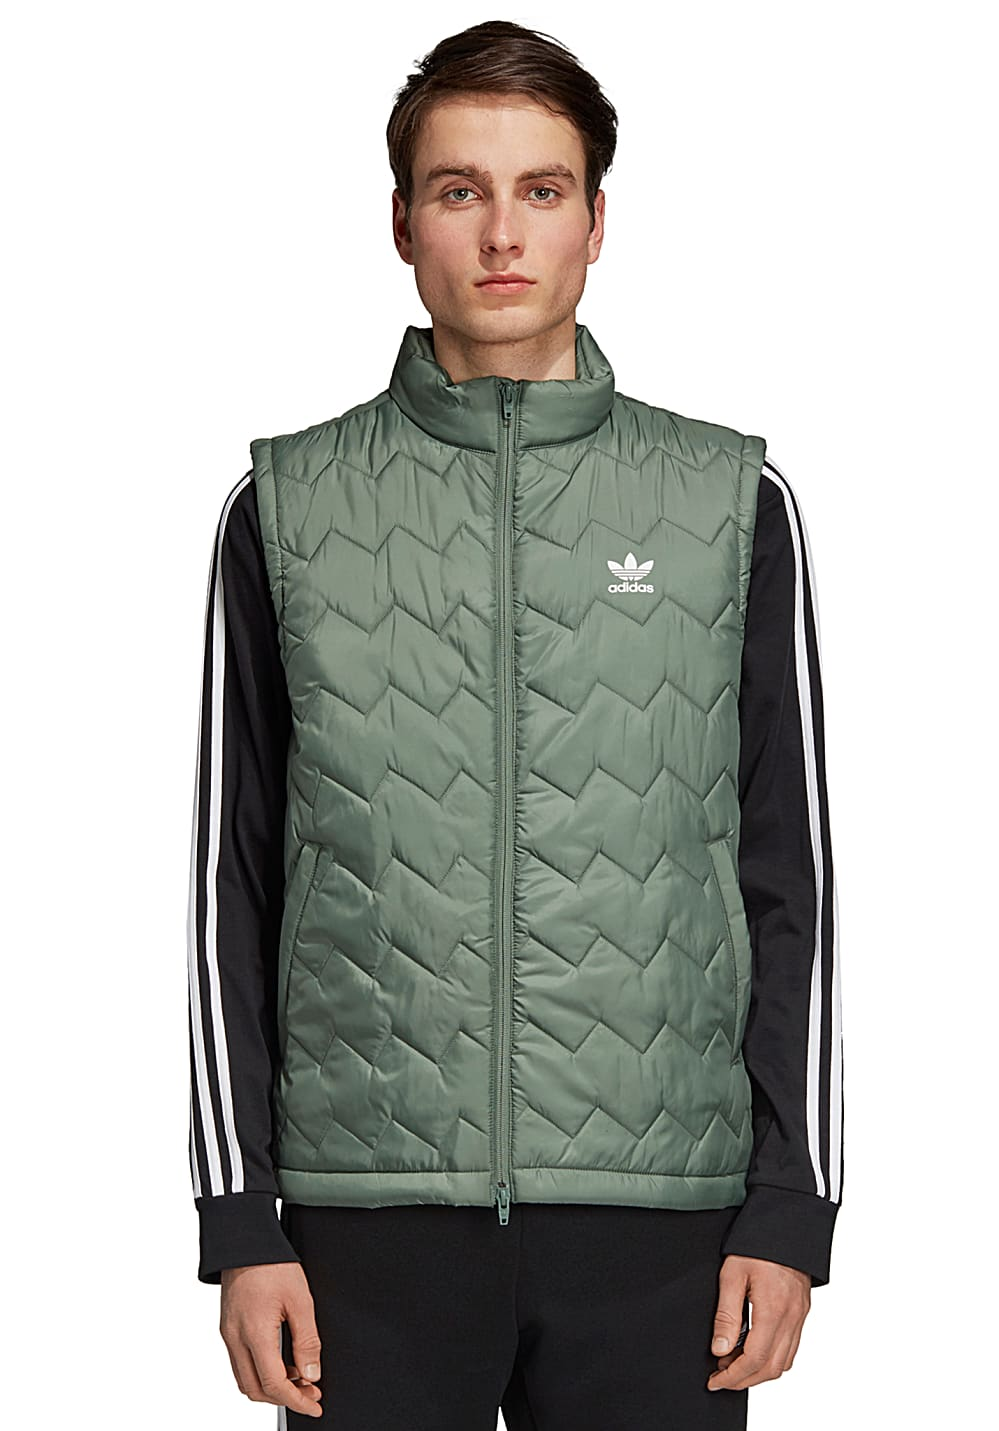 ADIDAS ORIGINALS SST Puffy Vest for Men Green